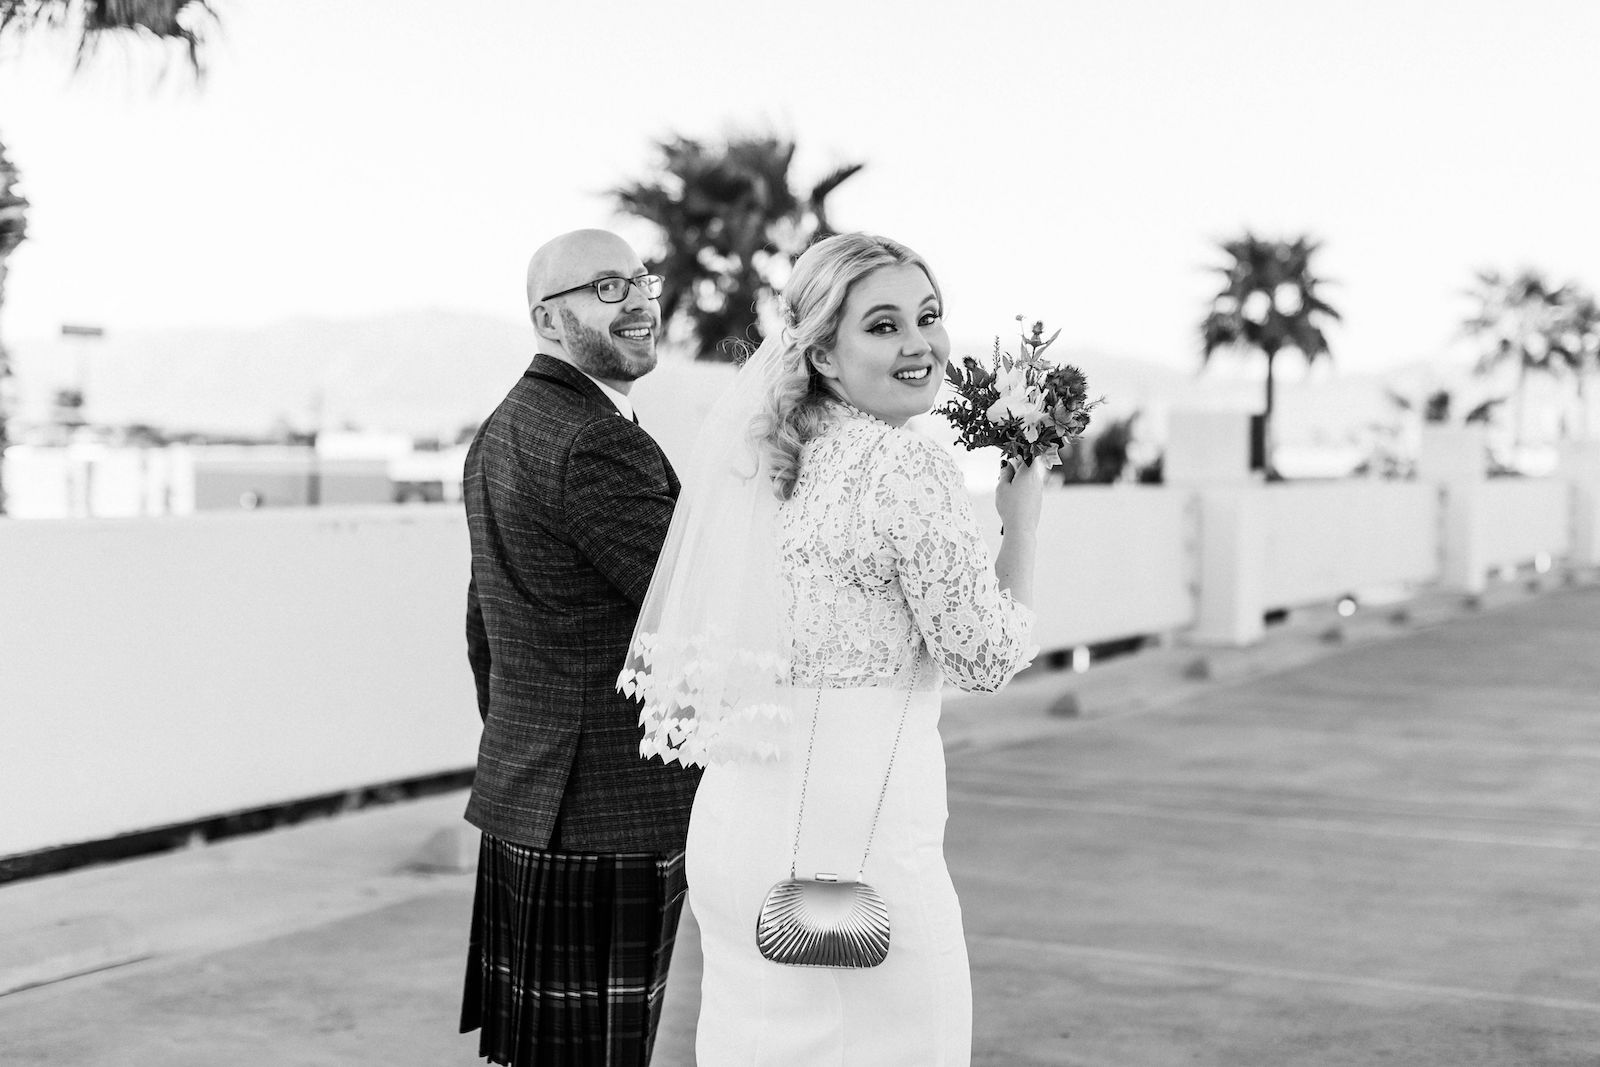 las vegas elopement rooftop downtown las vegas wedding00018.jpg